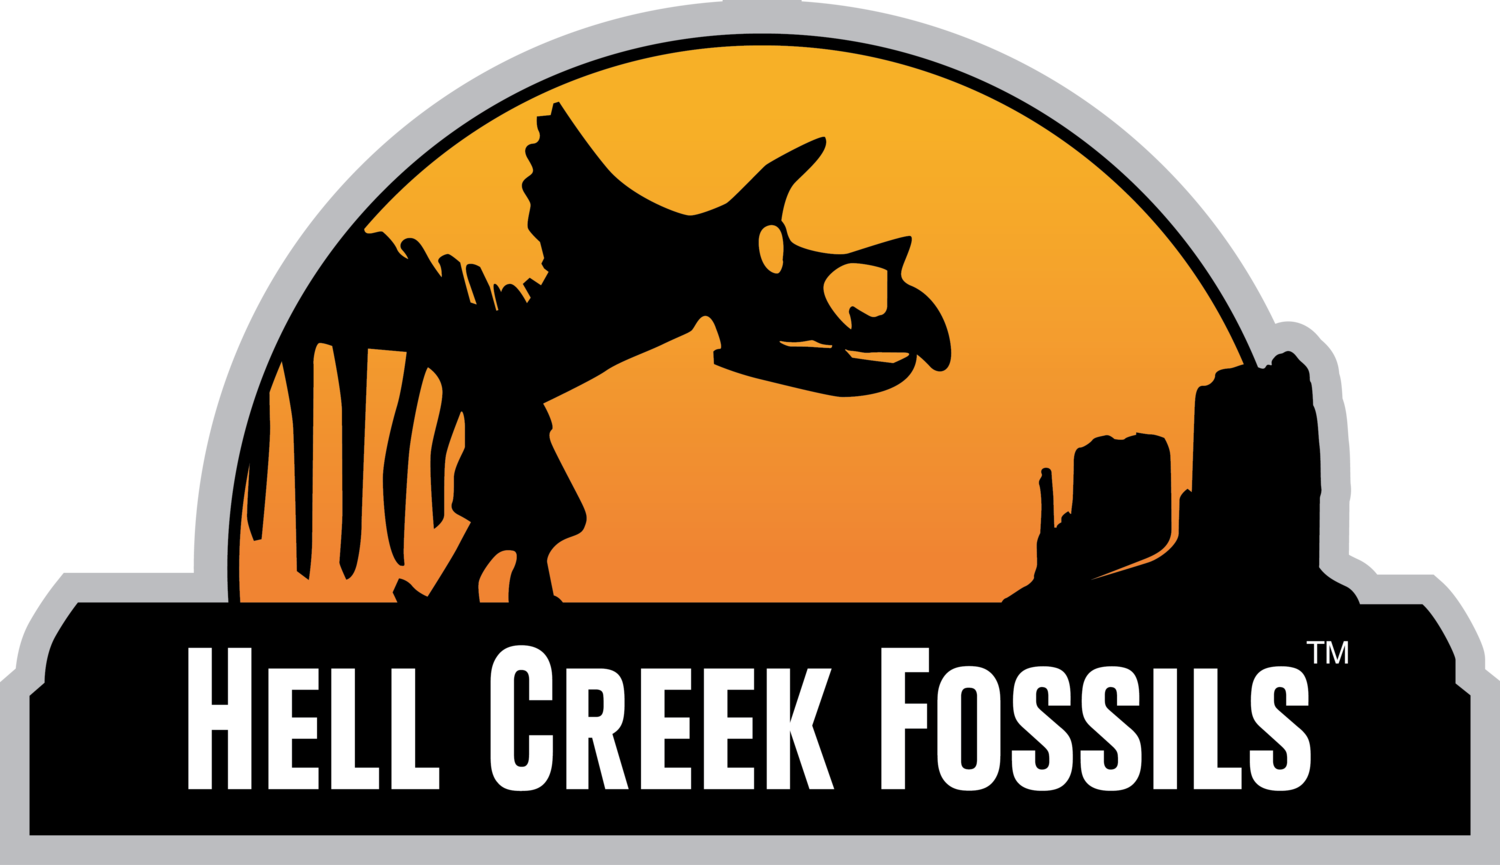 Hell Creek Fossils